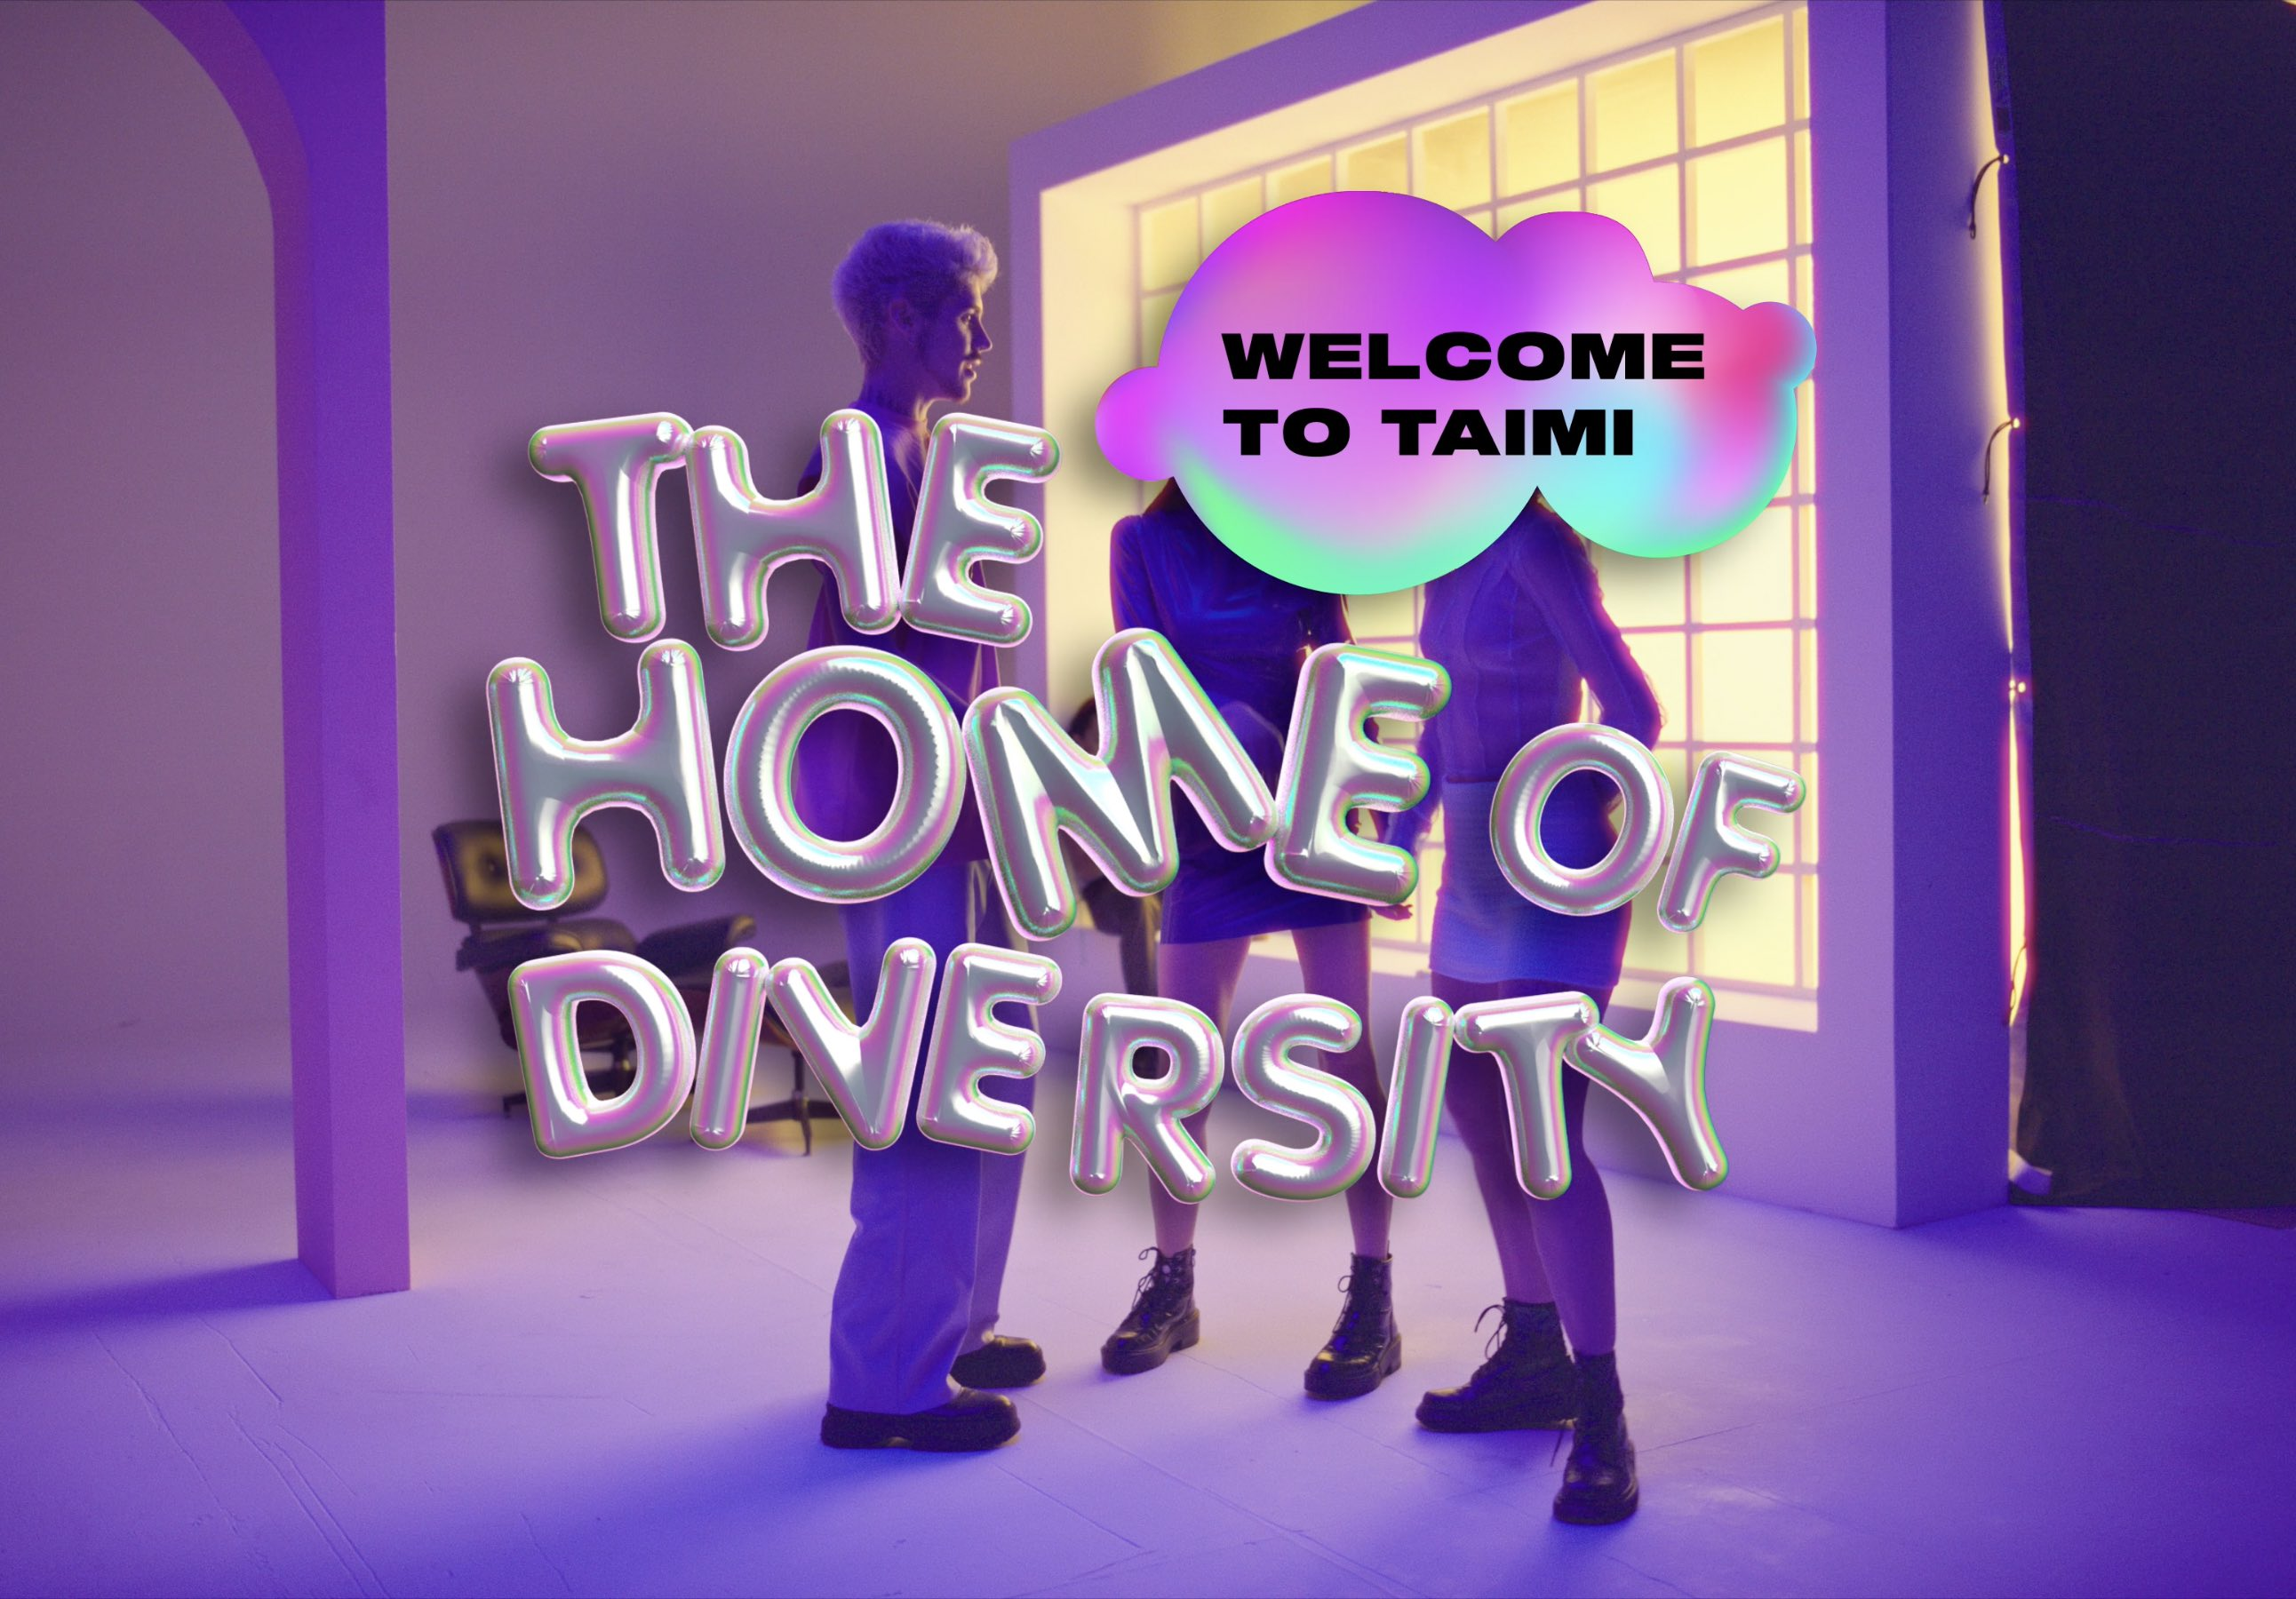 Taimi is the Home of Diversity